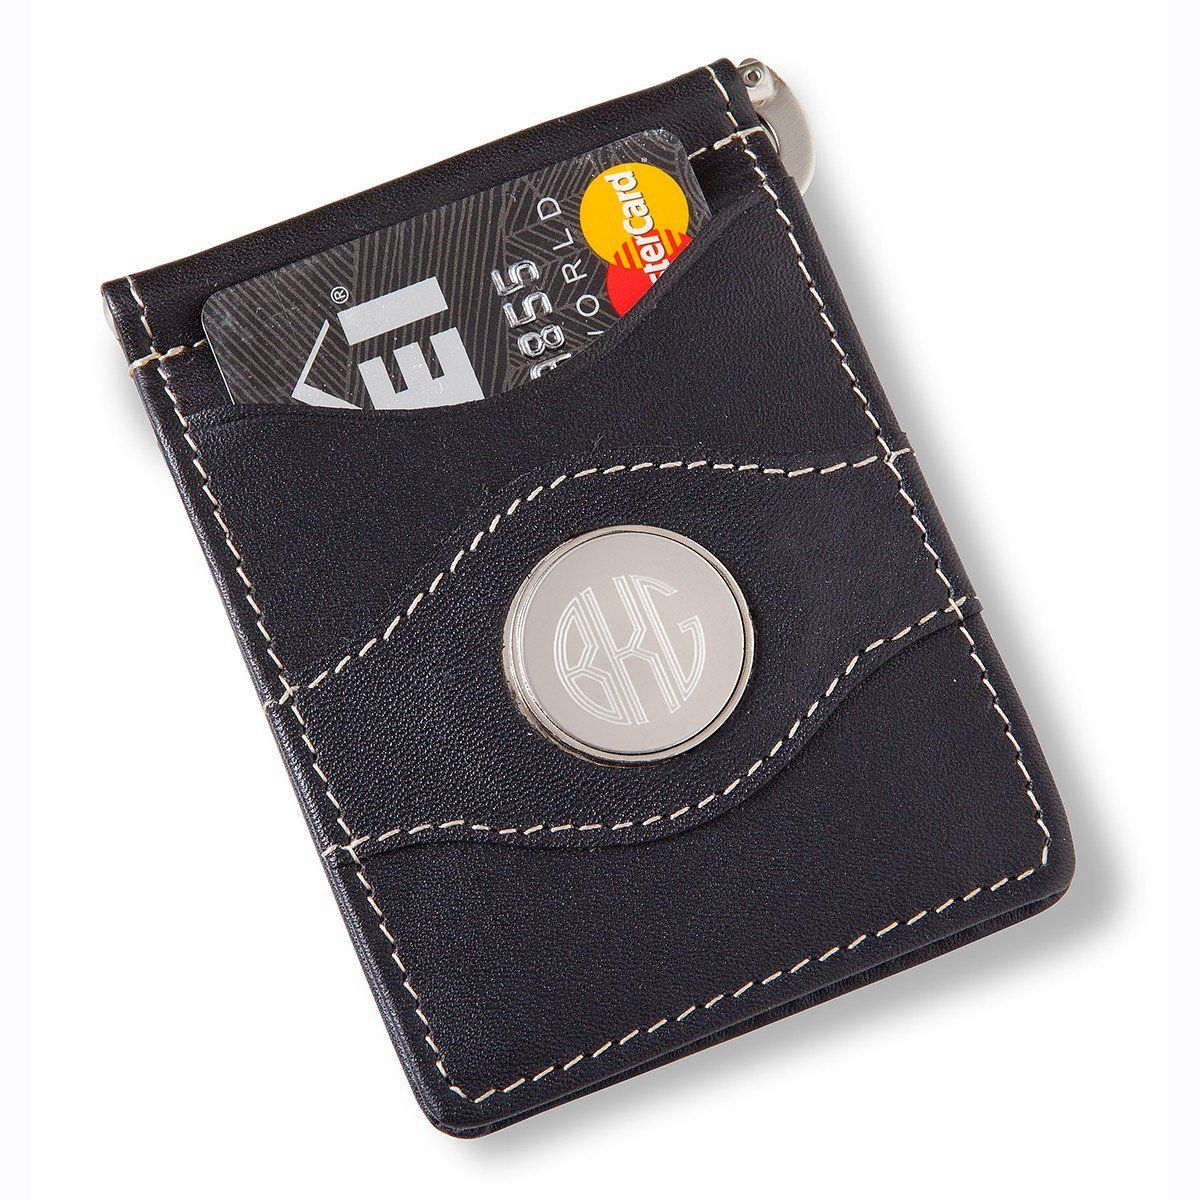 Engraved Money Clips - Personalized Money Clips